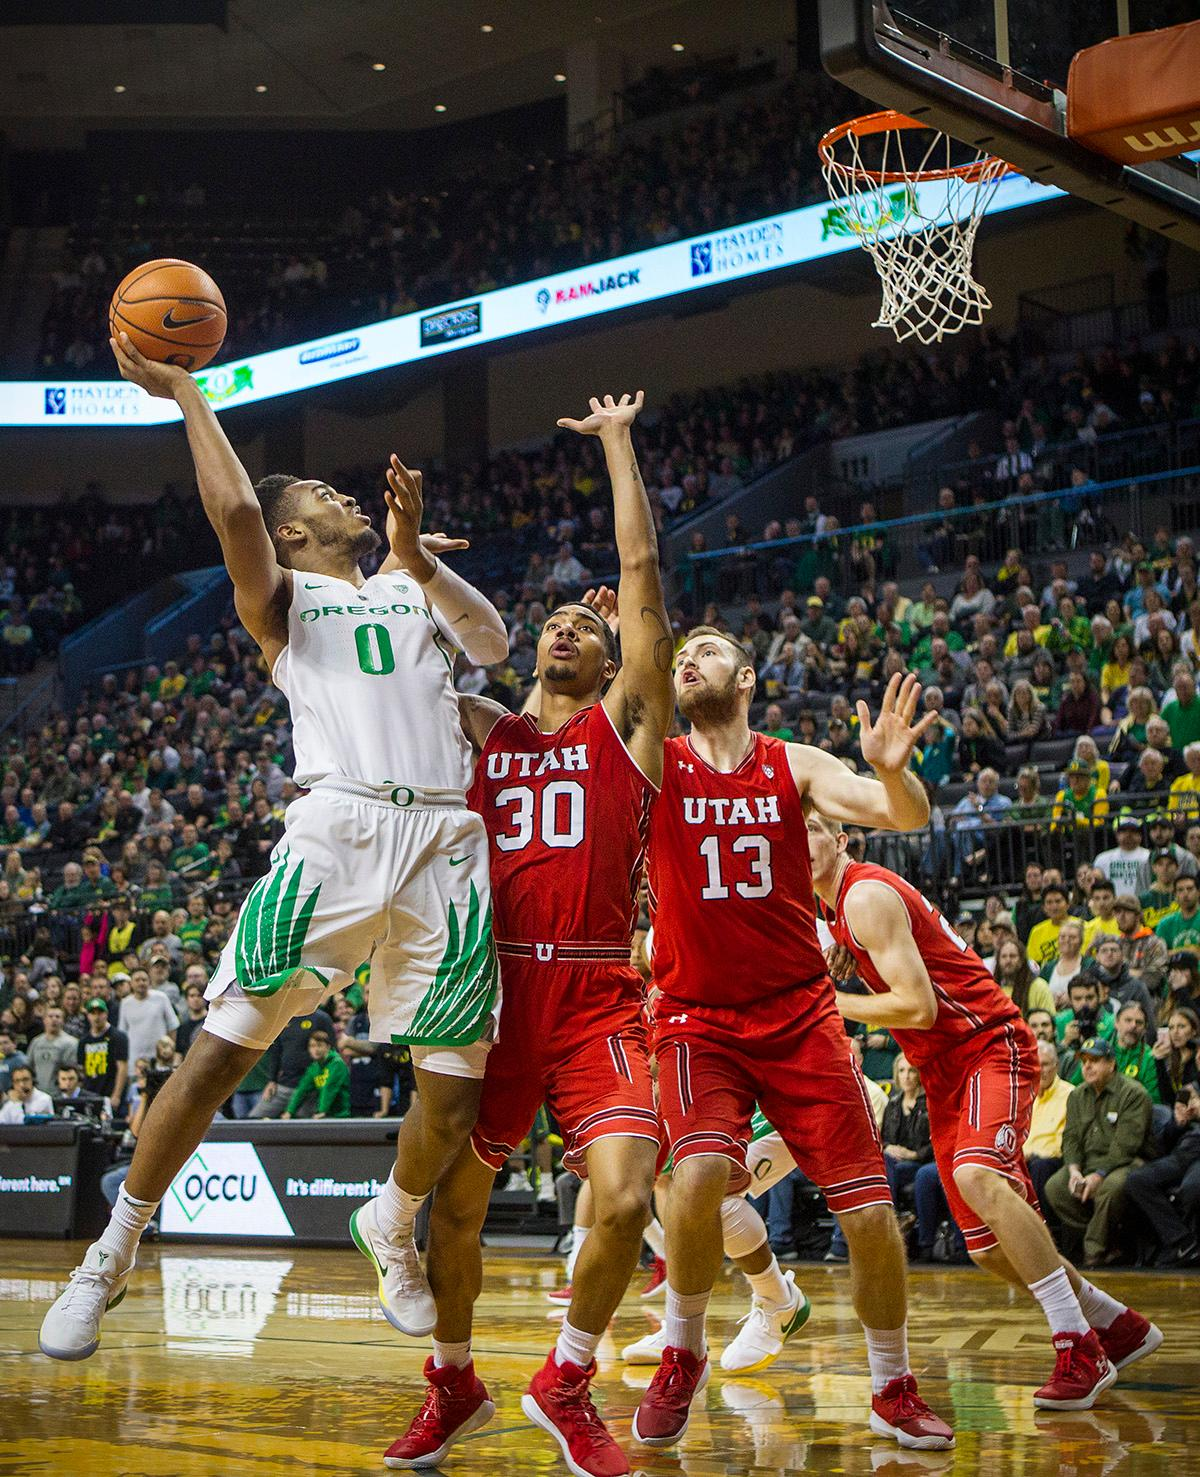 Oregon Ducks Troy Brown (#0) looks for the basket. The Utah Utes defeated the Oregon Ducks 66-56 on Friday night at Matthew Knight Arena. This is the first Pac-12 conference game loss at home for the Ducks since January of 2015. This also ended the five home game winning streak for the Ducks against the Utah Utes. Photo by Rhianna Gelhart, Oregon News Lab